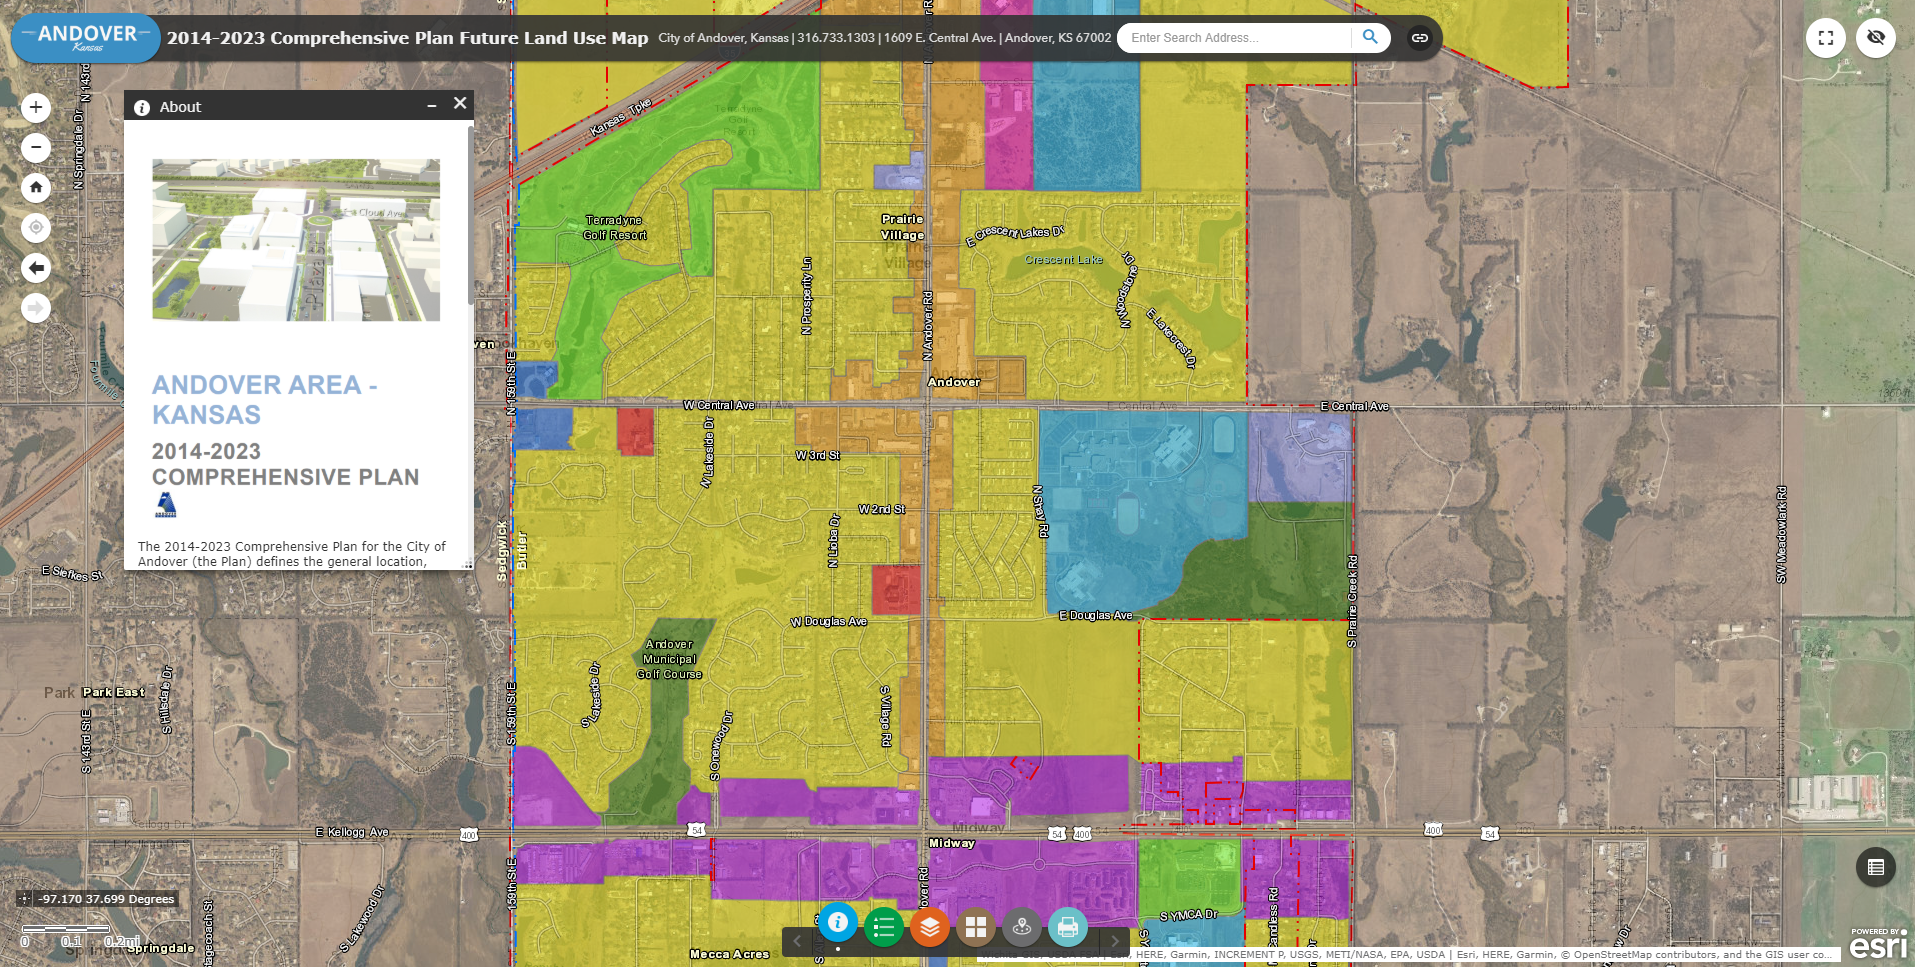 2014-2023 Comprehensive Plan Future Land Use Map